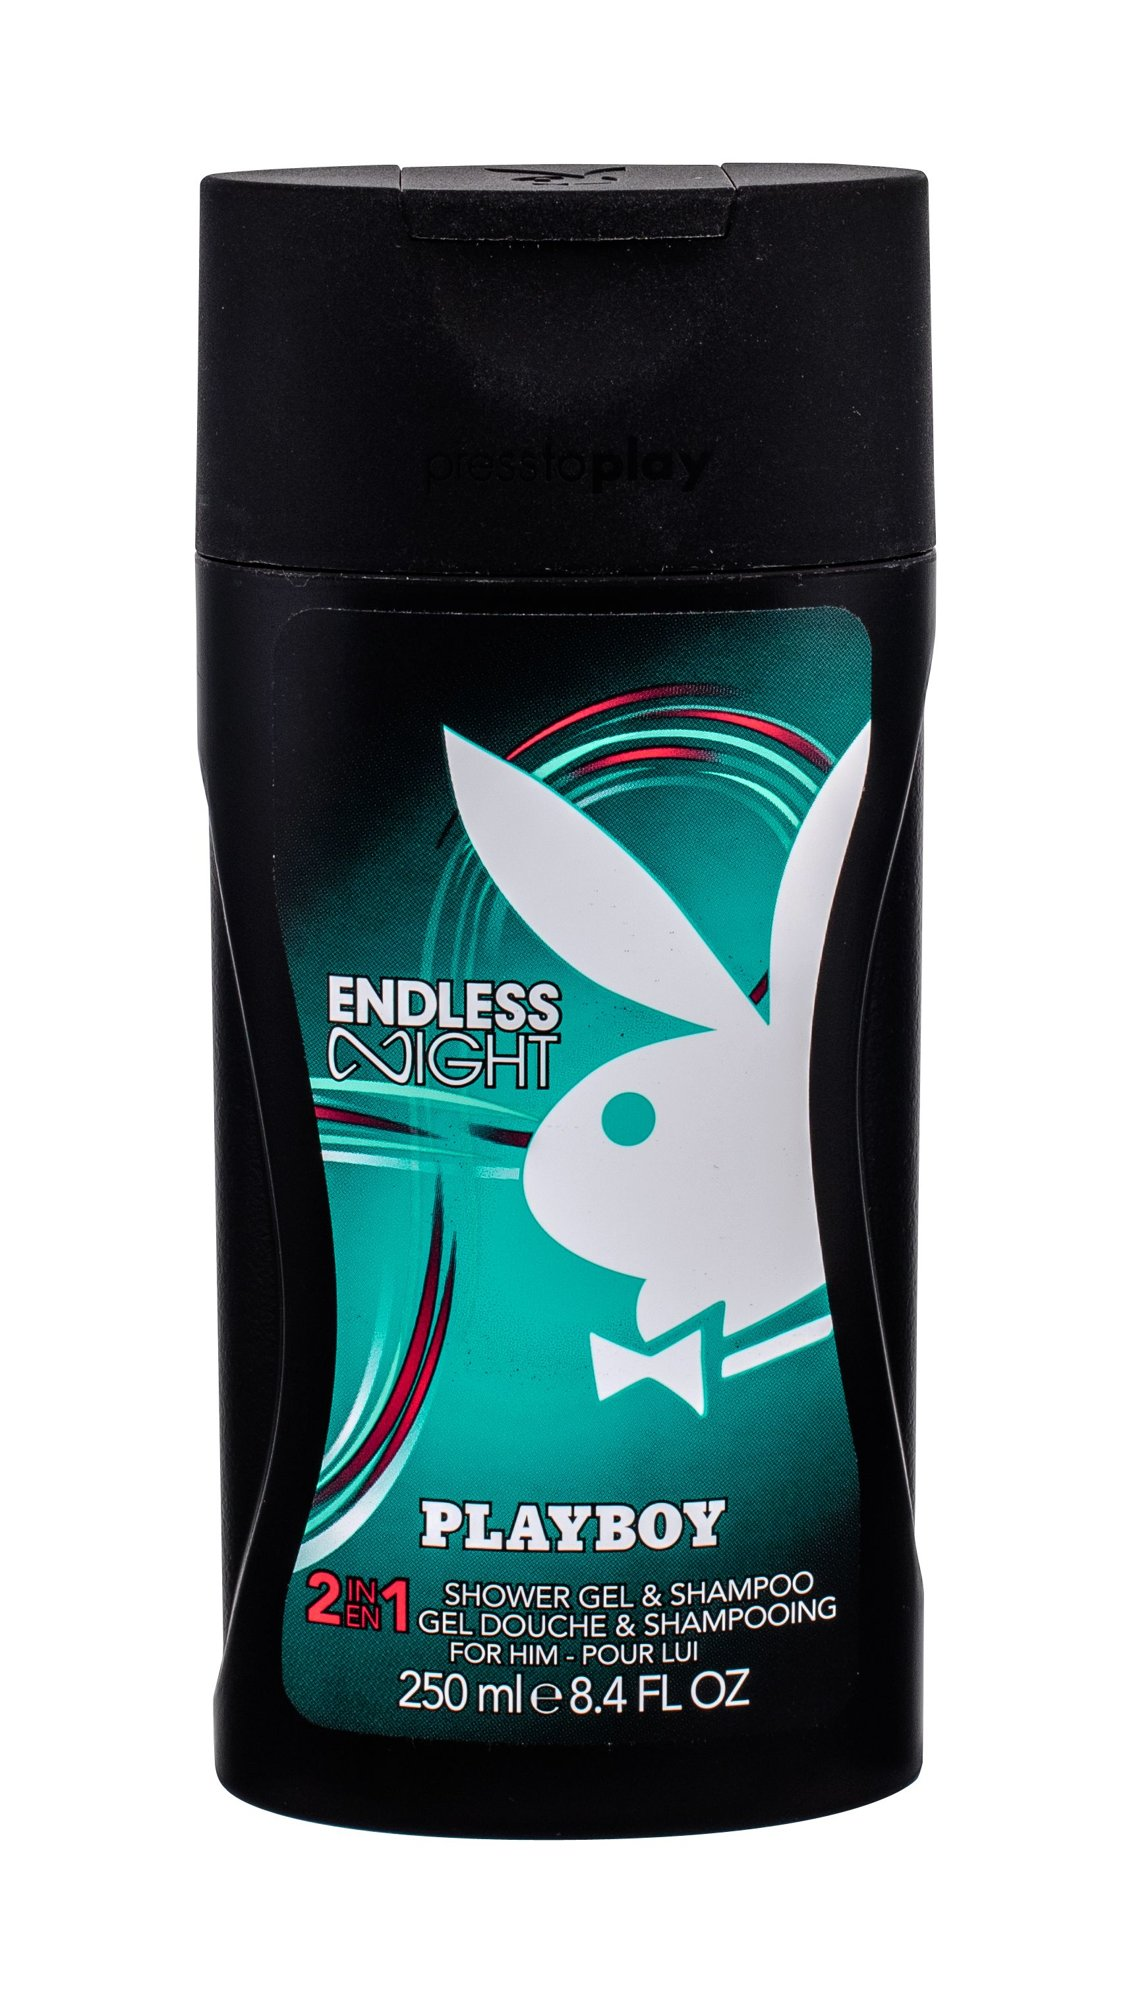 Playboy Endless Night Shower gel 250ml